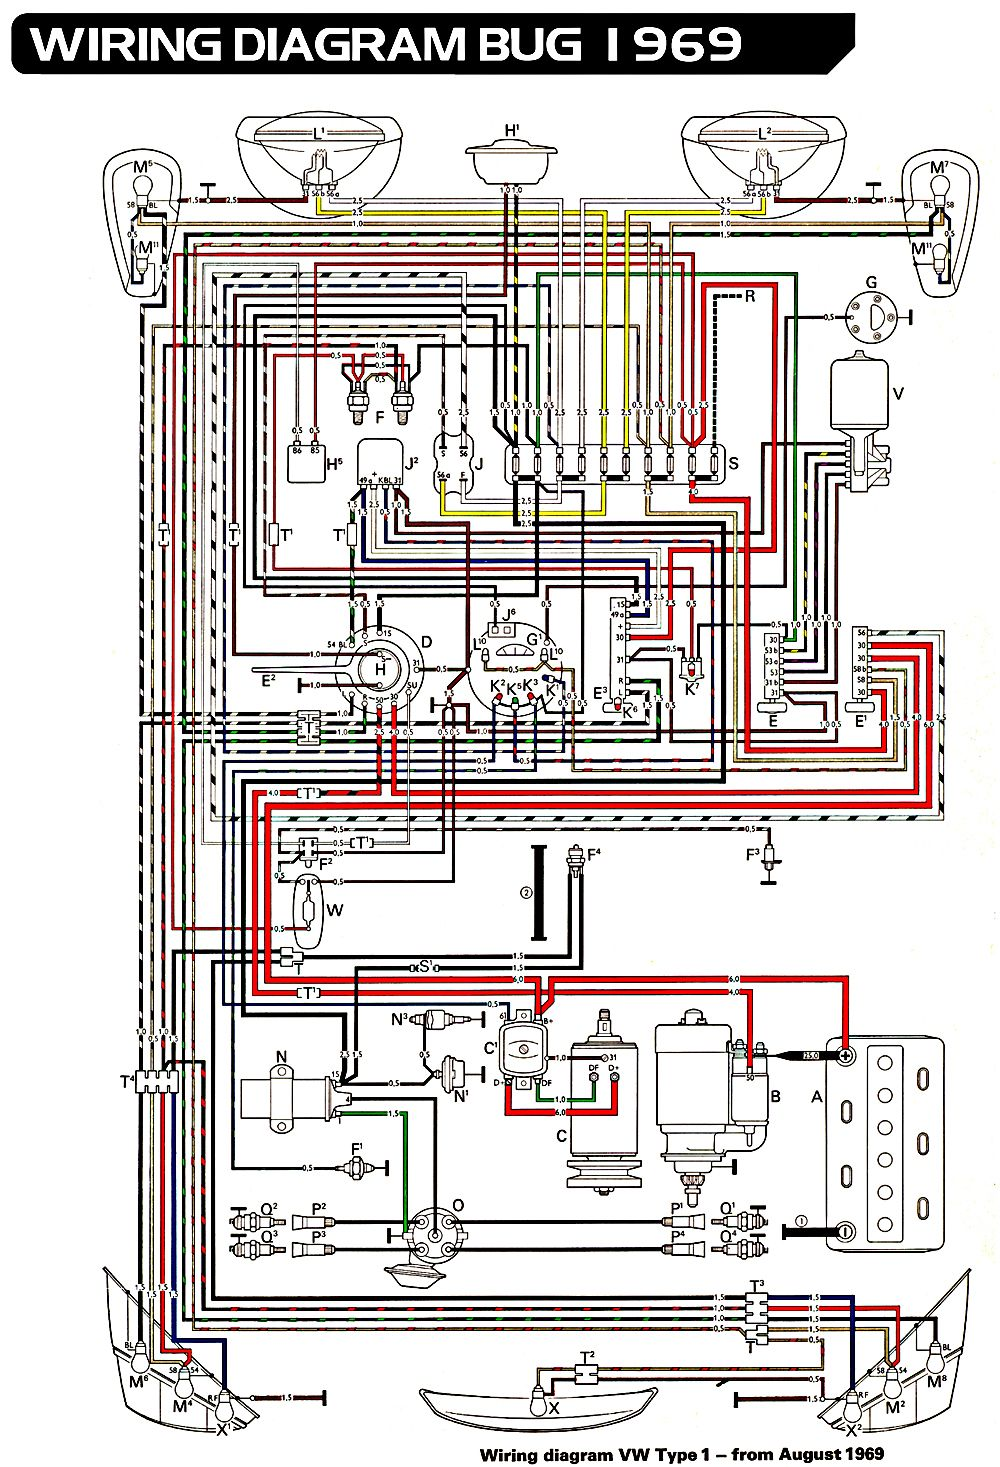 6d75c15875479254f26a32a8499d9044 volkswagen beetle wiring diagram 1966 vw beetle wiring 1969 vw bug fuse box at aneh.co